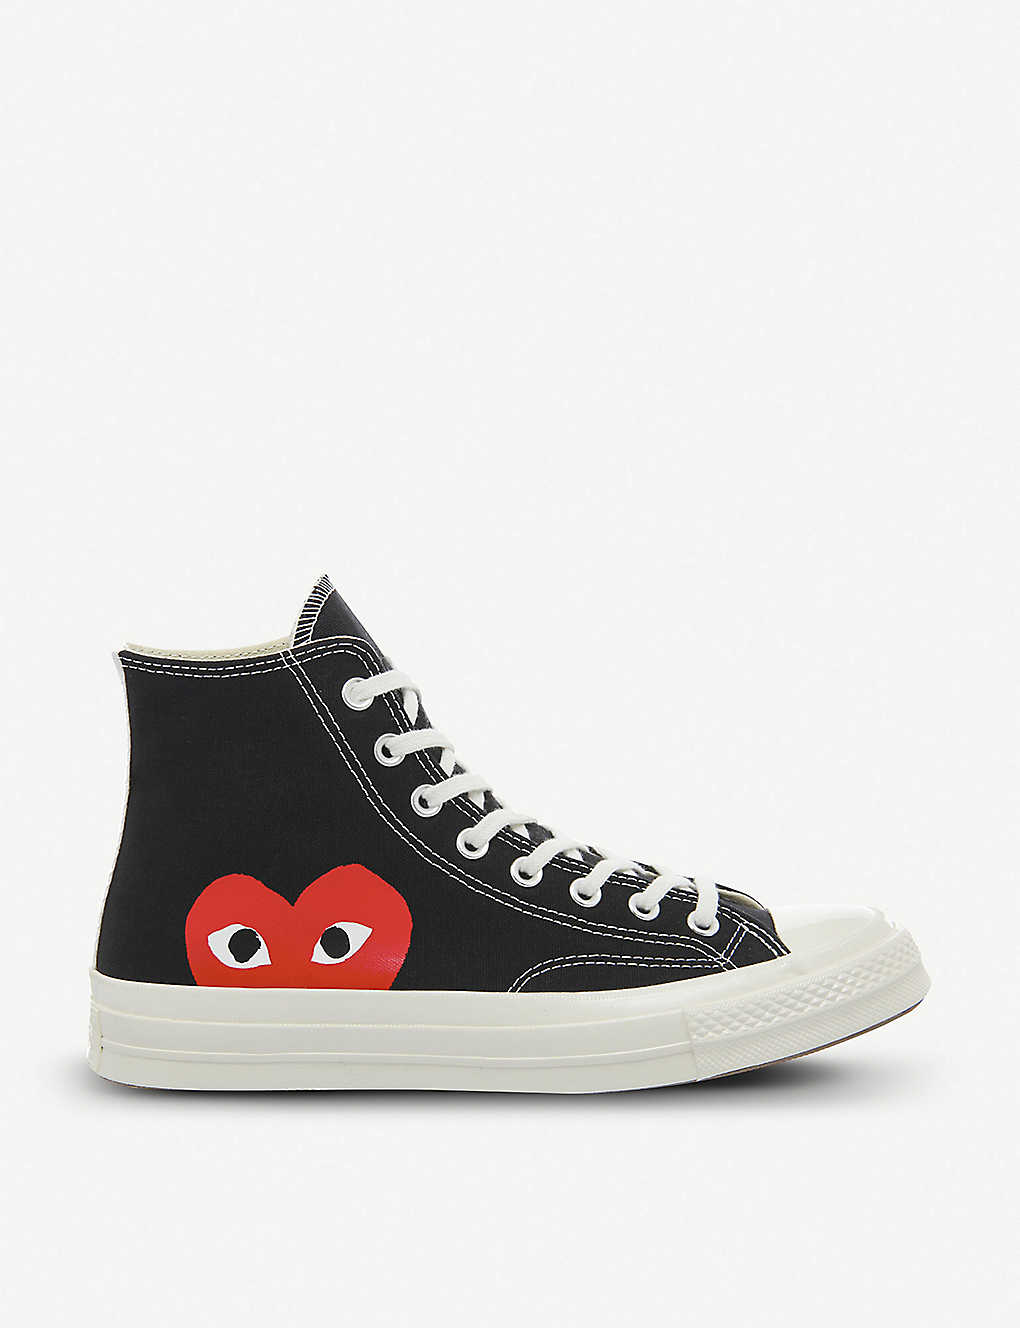 d0d95a6dea5c COMME DES GARCONS - Converse high-top 70s x play cdg trainers ...